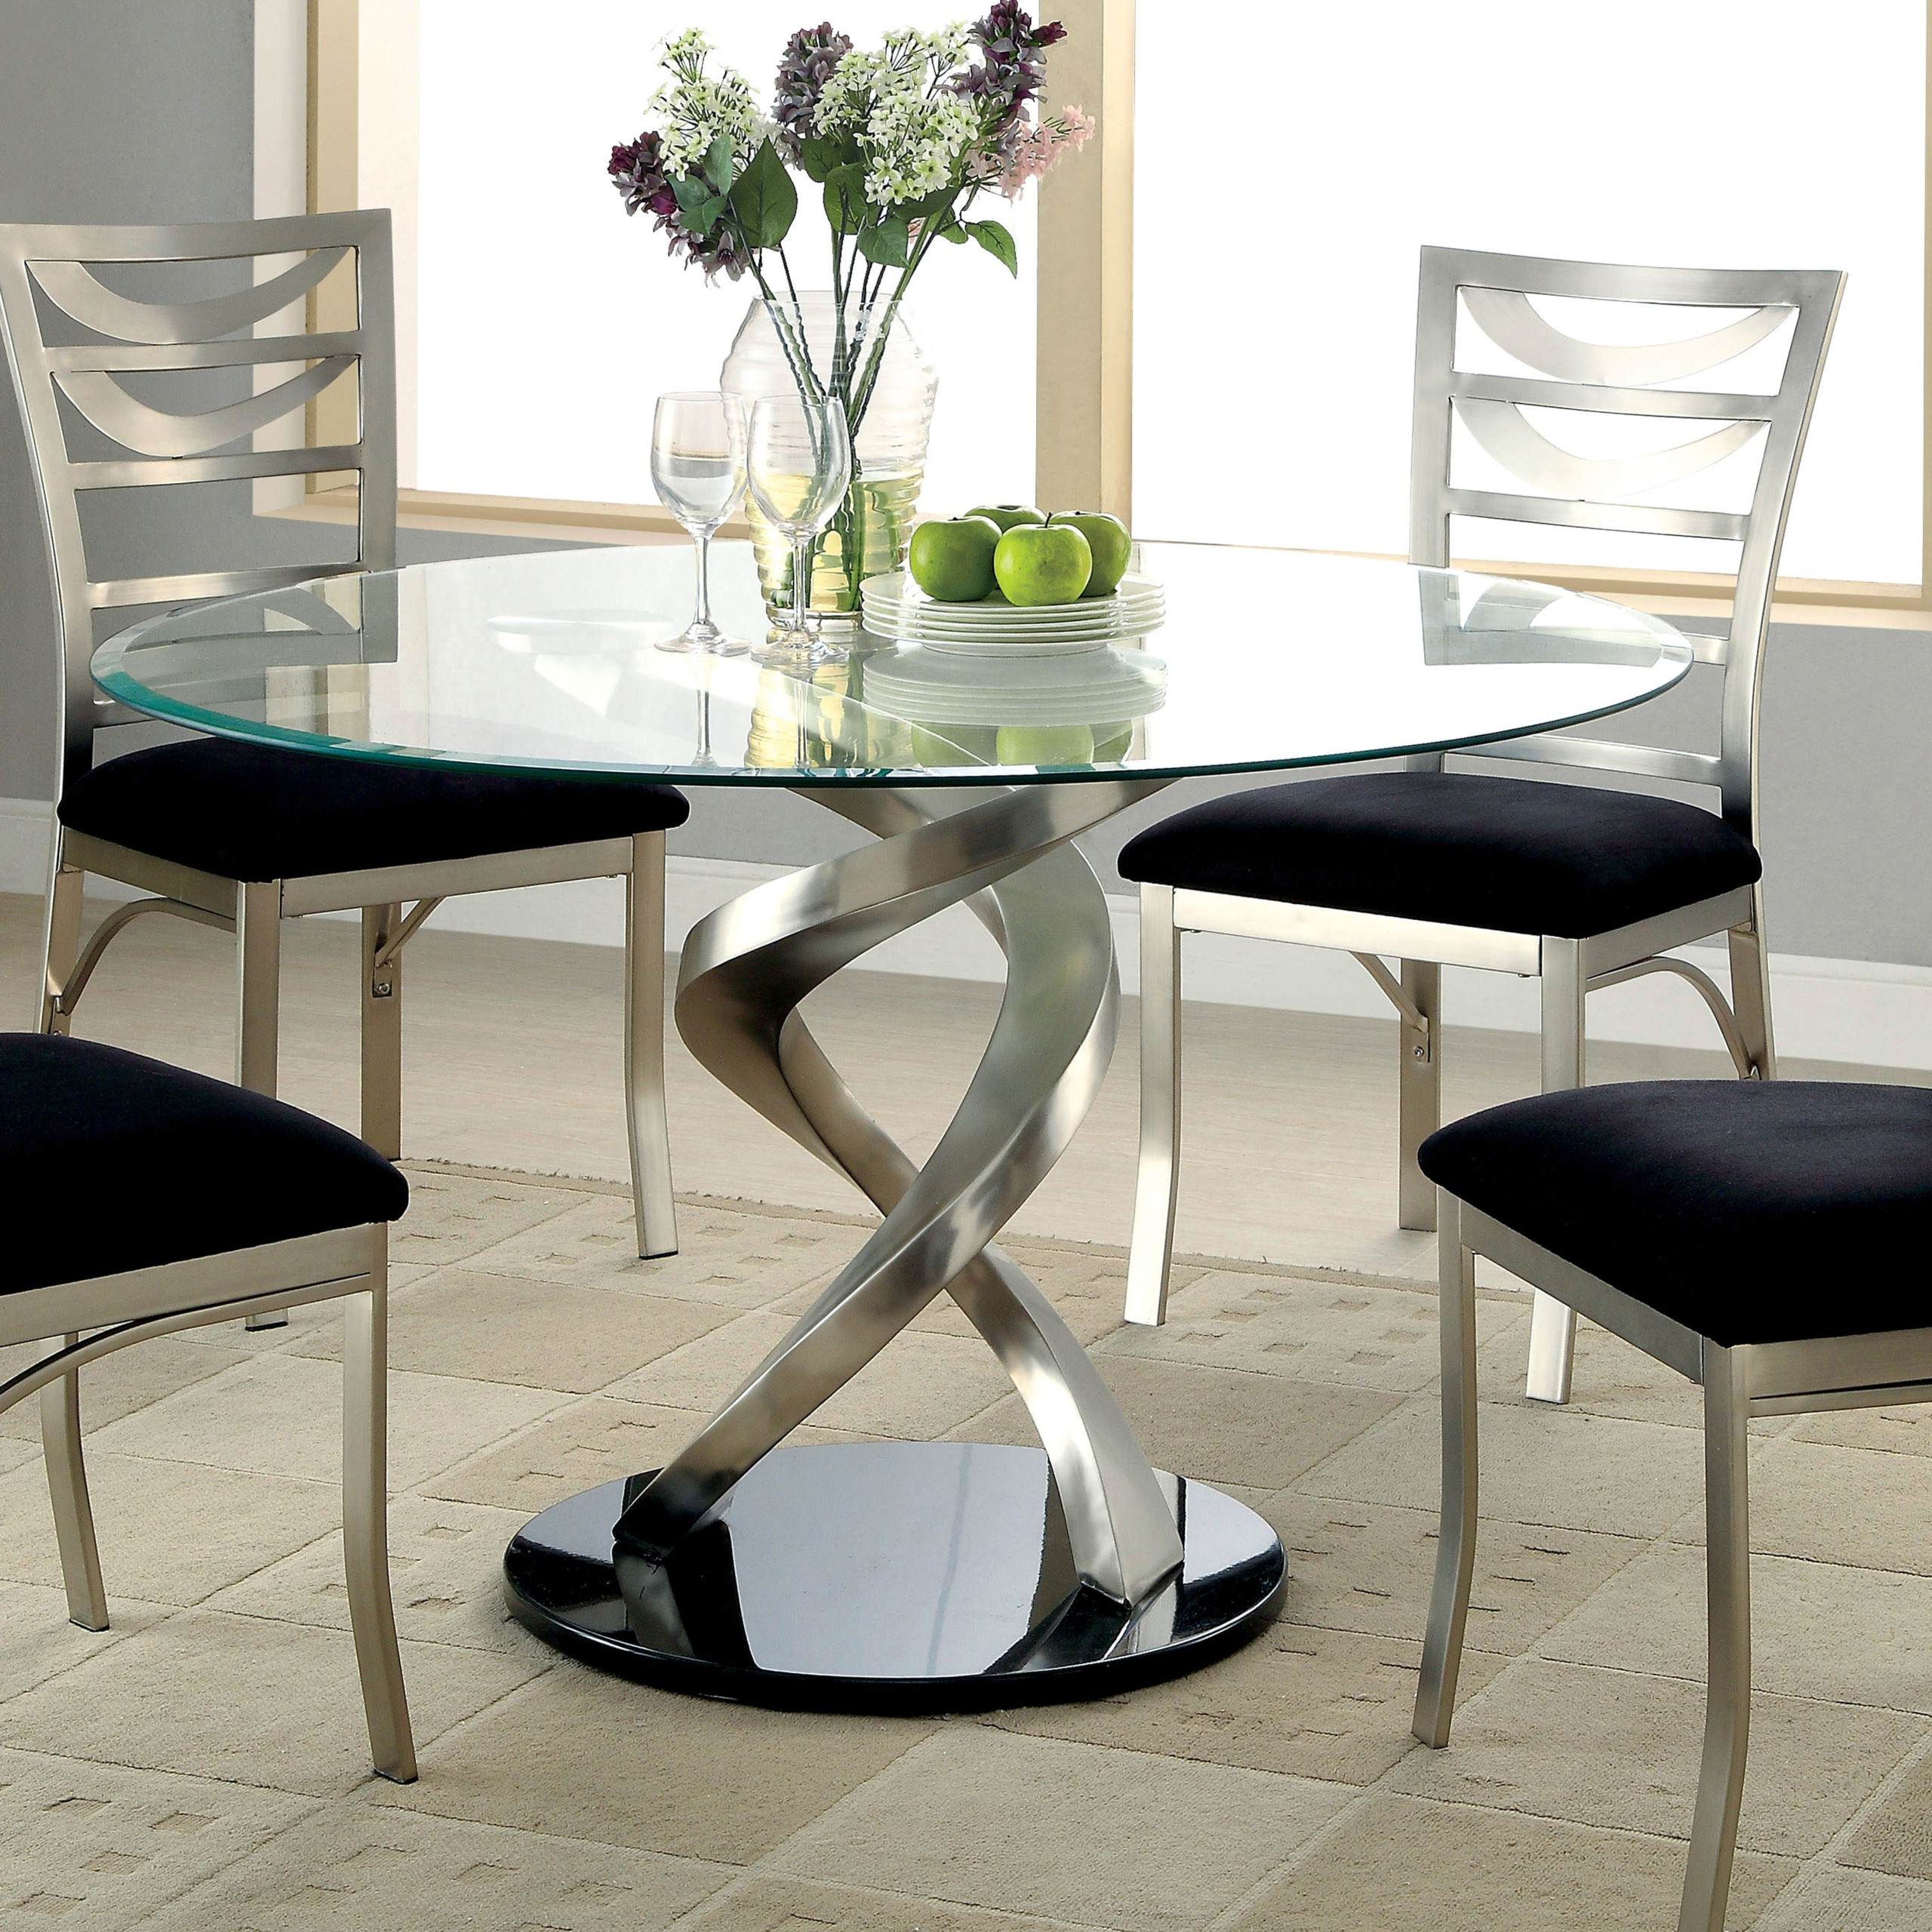 Small Round Dining Table Breakfast Bar Kitchen Living Room Furniture Glass Metal